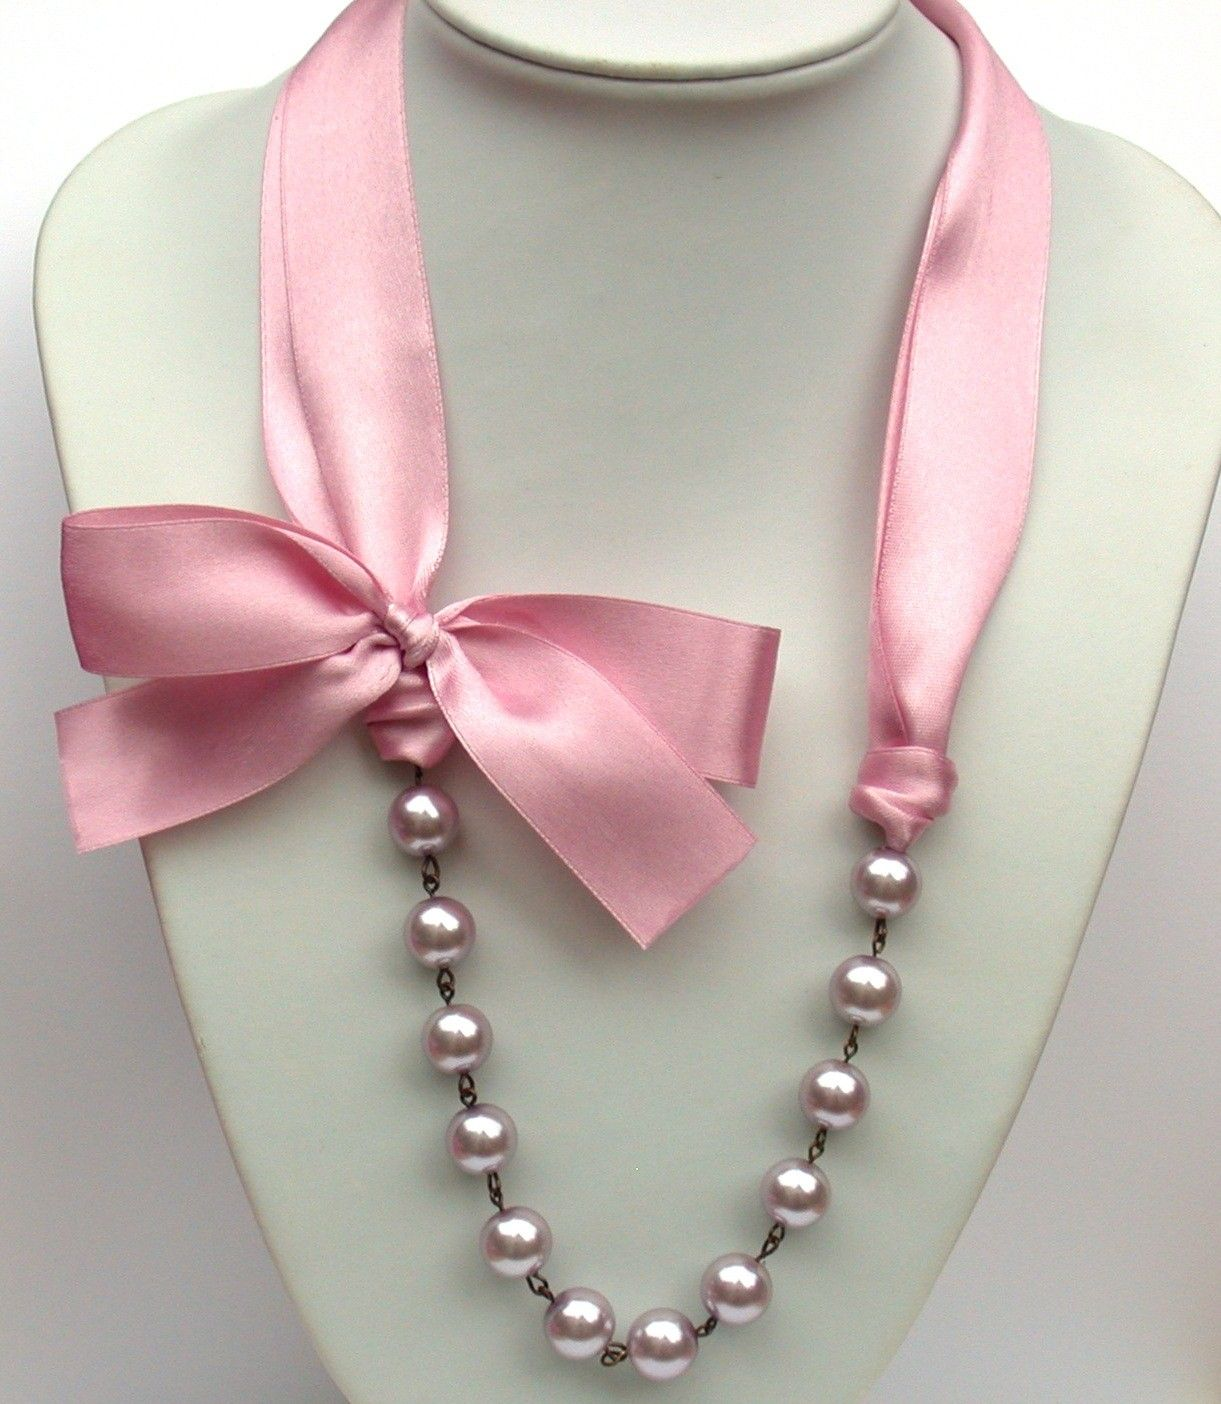 white necklaces at and master ribbon marked closure v lanvin tie beaded paris beige necklace id jewelry pearls made satin